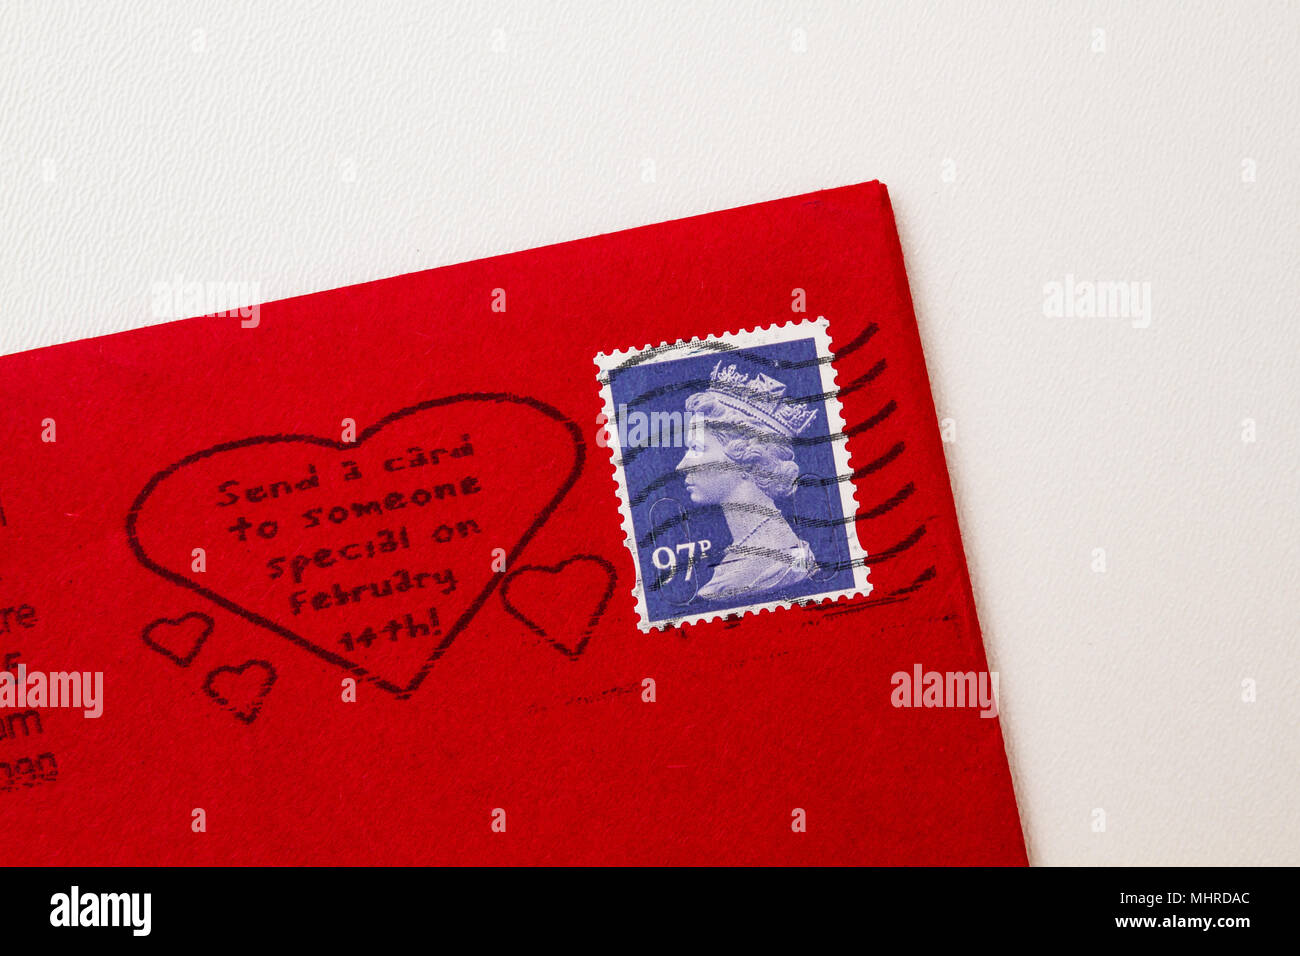 Red envelope corner with a blue stamp of Queen Elisabeth II. UK postage  with Valentine's Day dedication isolated on white background. - Stock Image